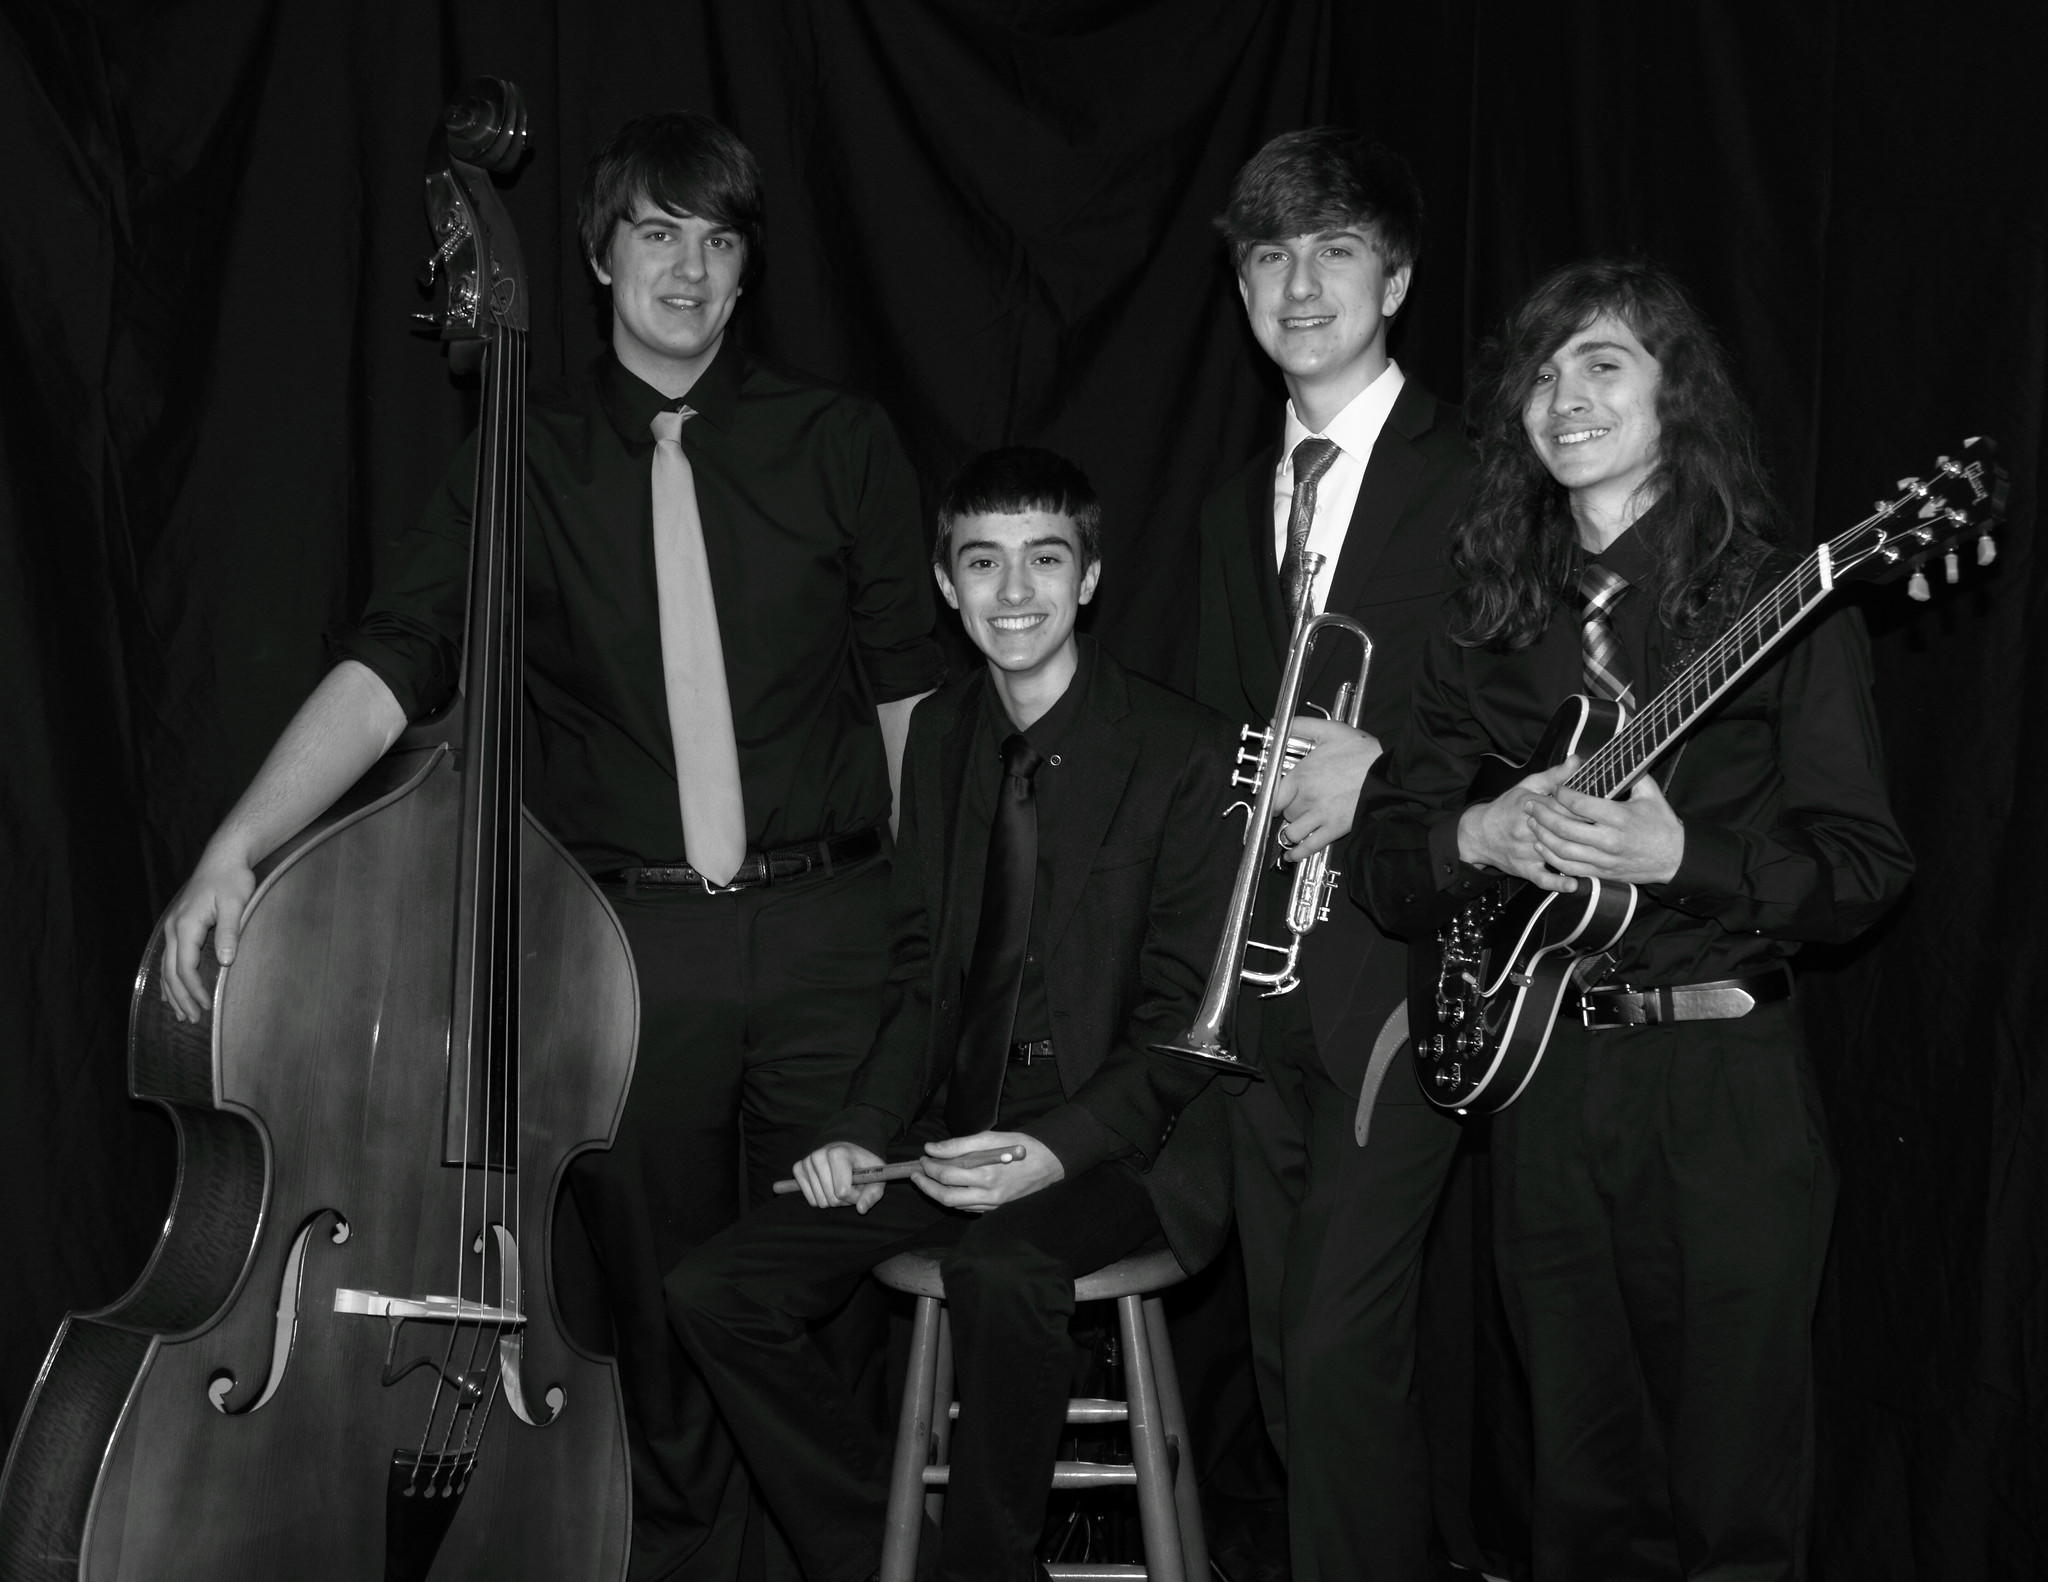 From left to right: Michael Louchen, Brandon Charron, Tom Killackey and Matt Stevens.